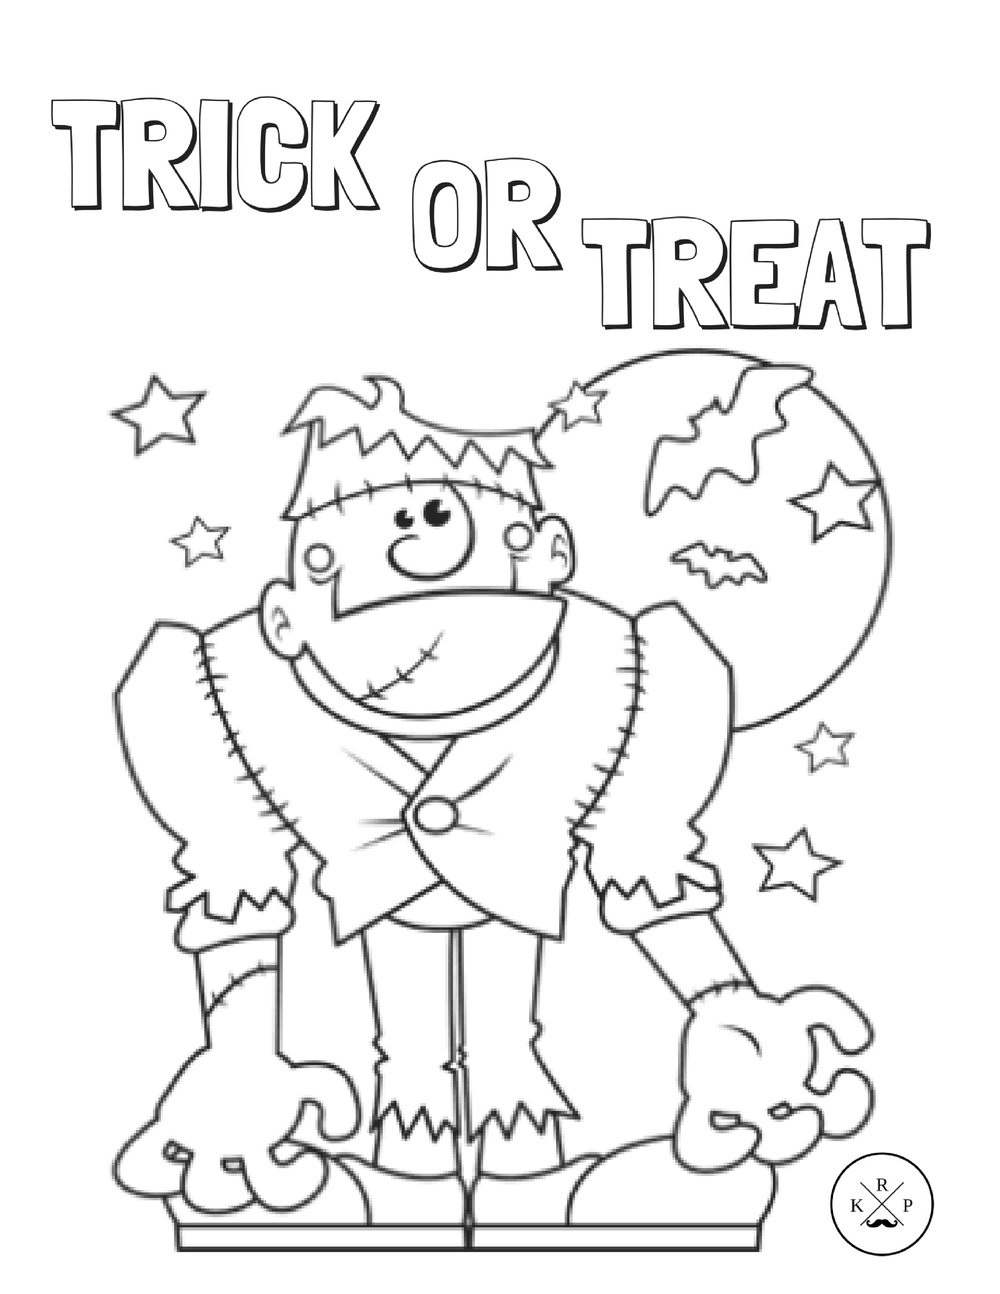 Trick or Treat - Letter Size.jpg